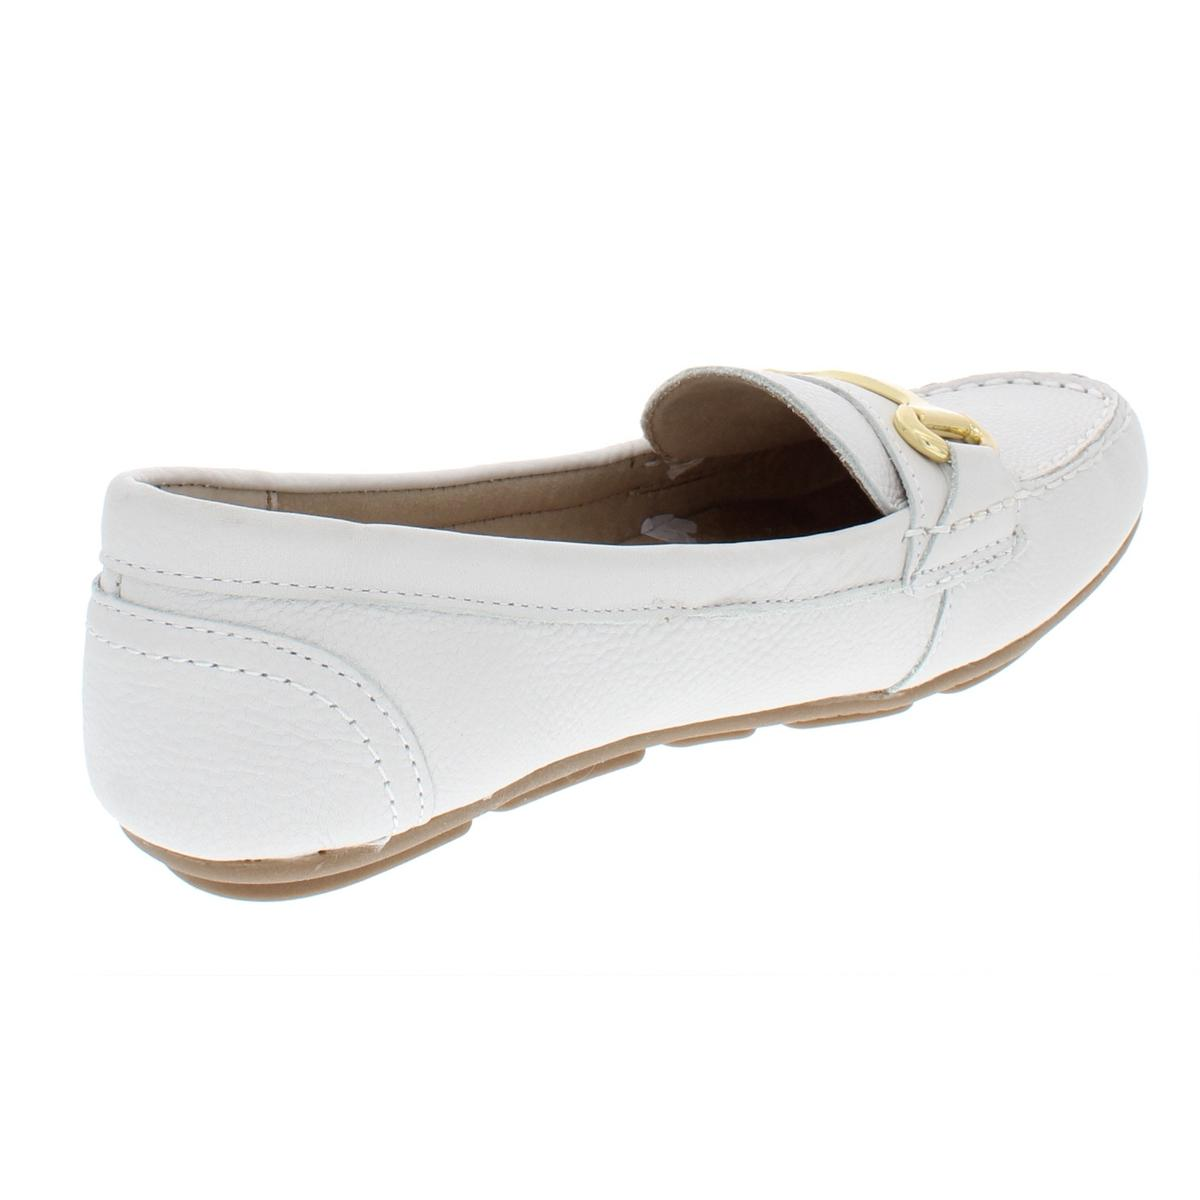 White-Mountain-Womens-Scotch-Padded-Insole-Dress-Moccasins-Shoes-BHFO-3287 thumbnail 8